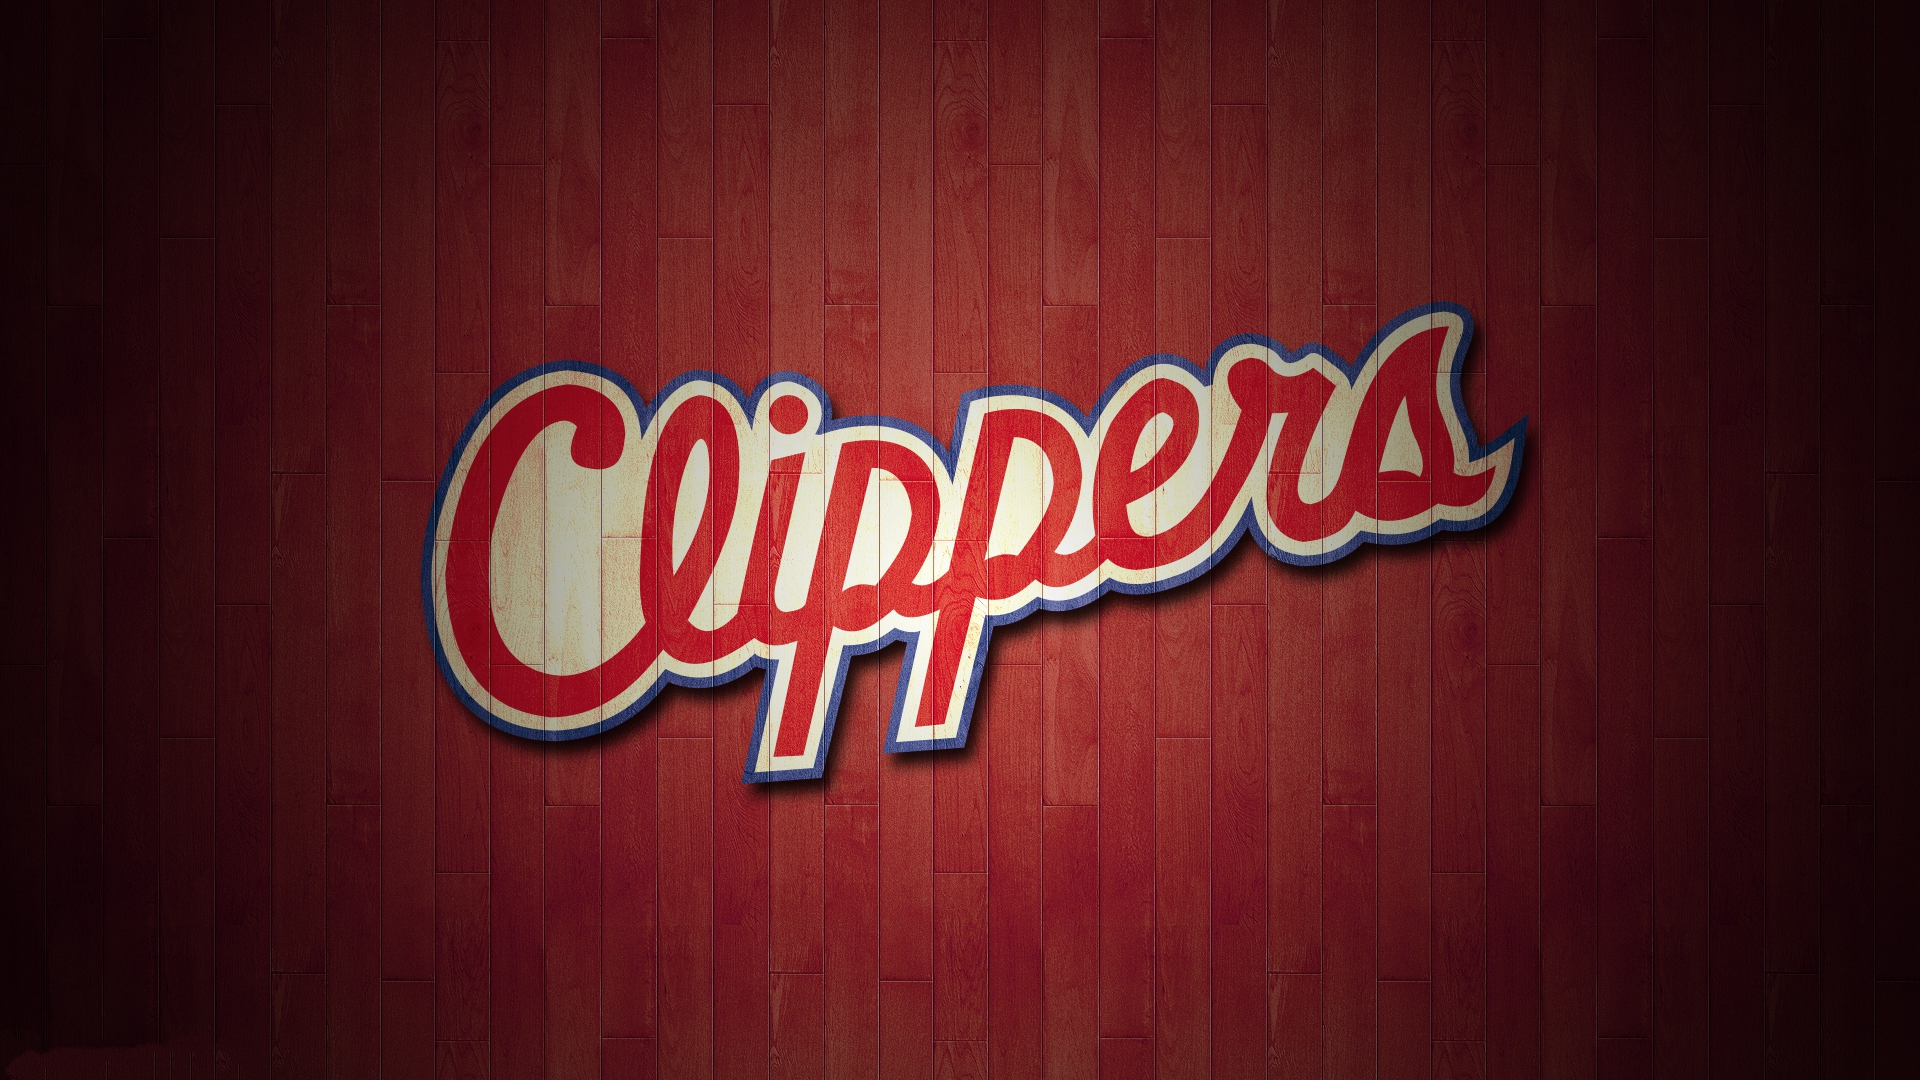 Travel Agency Wallpaper Hd Losangeles Clippers Logo Wallpapers Download Free